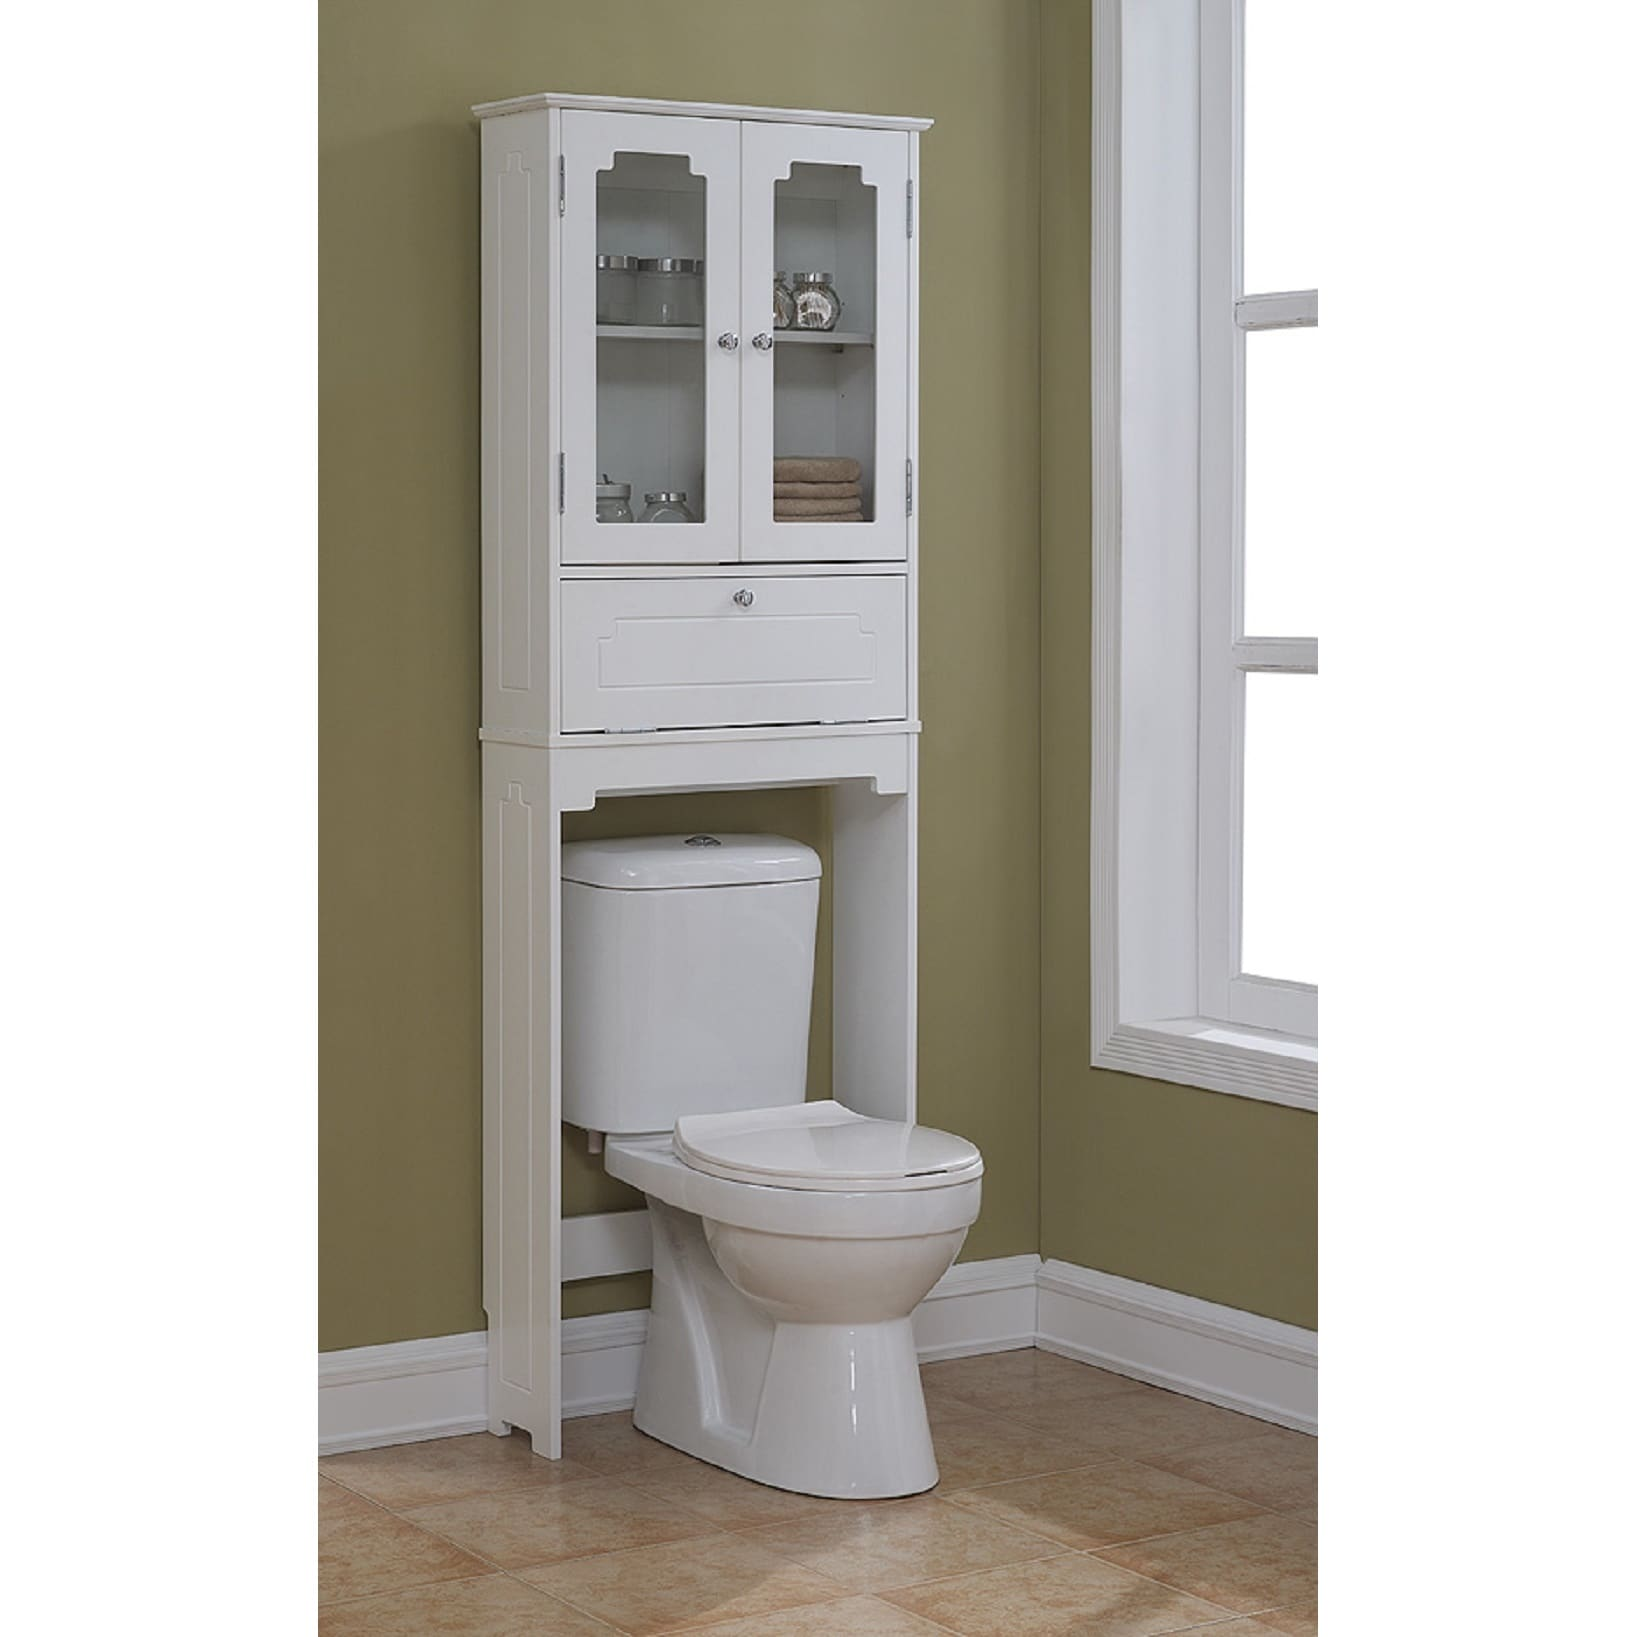 Superbe Shop Free Standing Over The Toliet Cabinet 23.62 X 68.93 Inch   Free  Shipping Today   Overstock   14396194